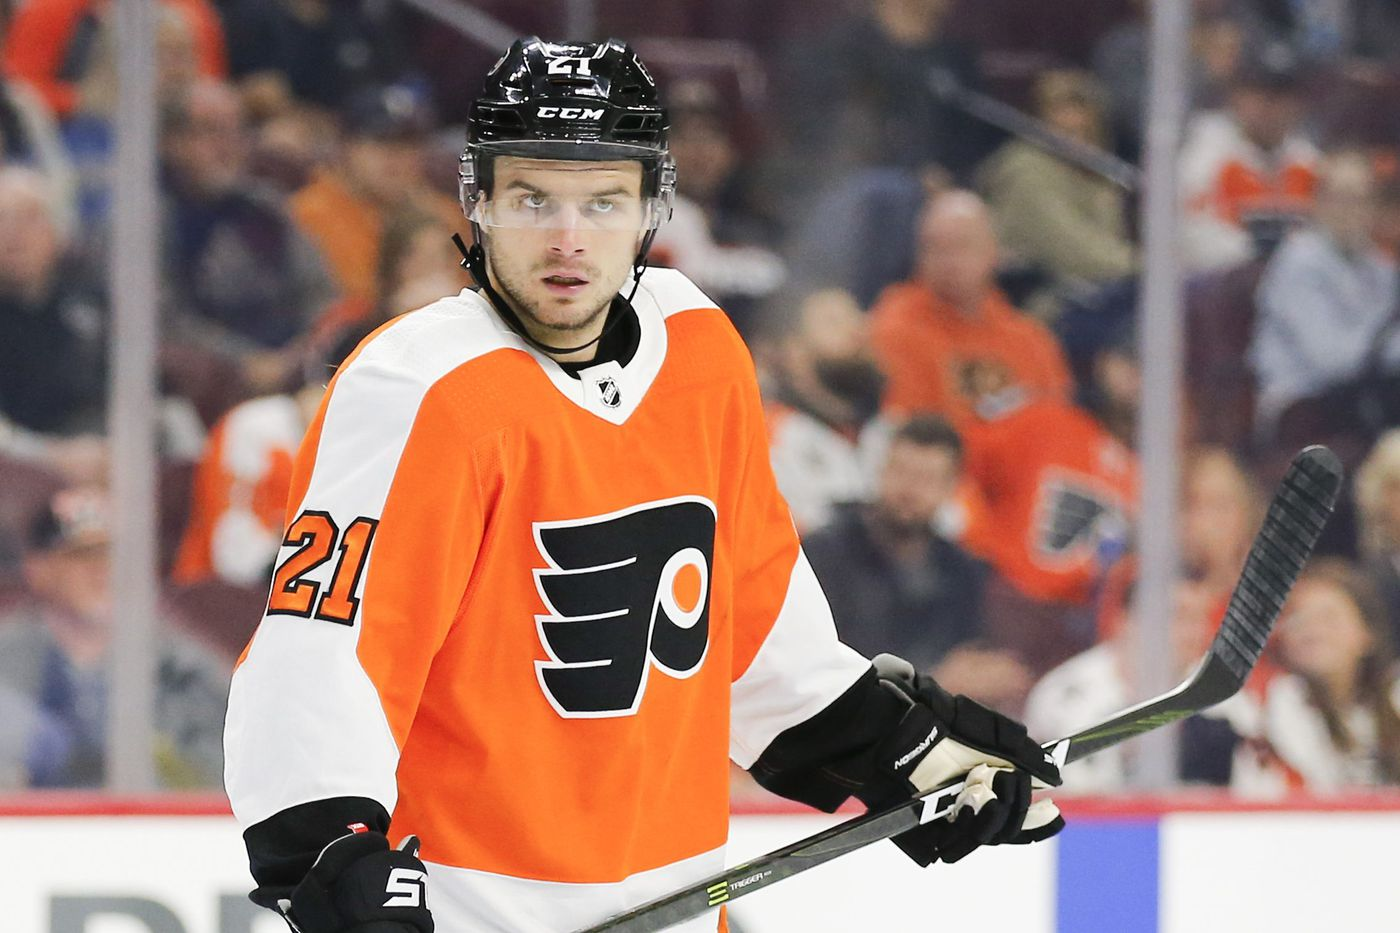 Scott Laughton promoted in Flyers' lineup; Jordan Weal benched